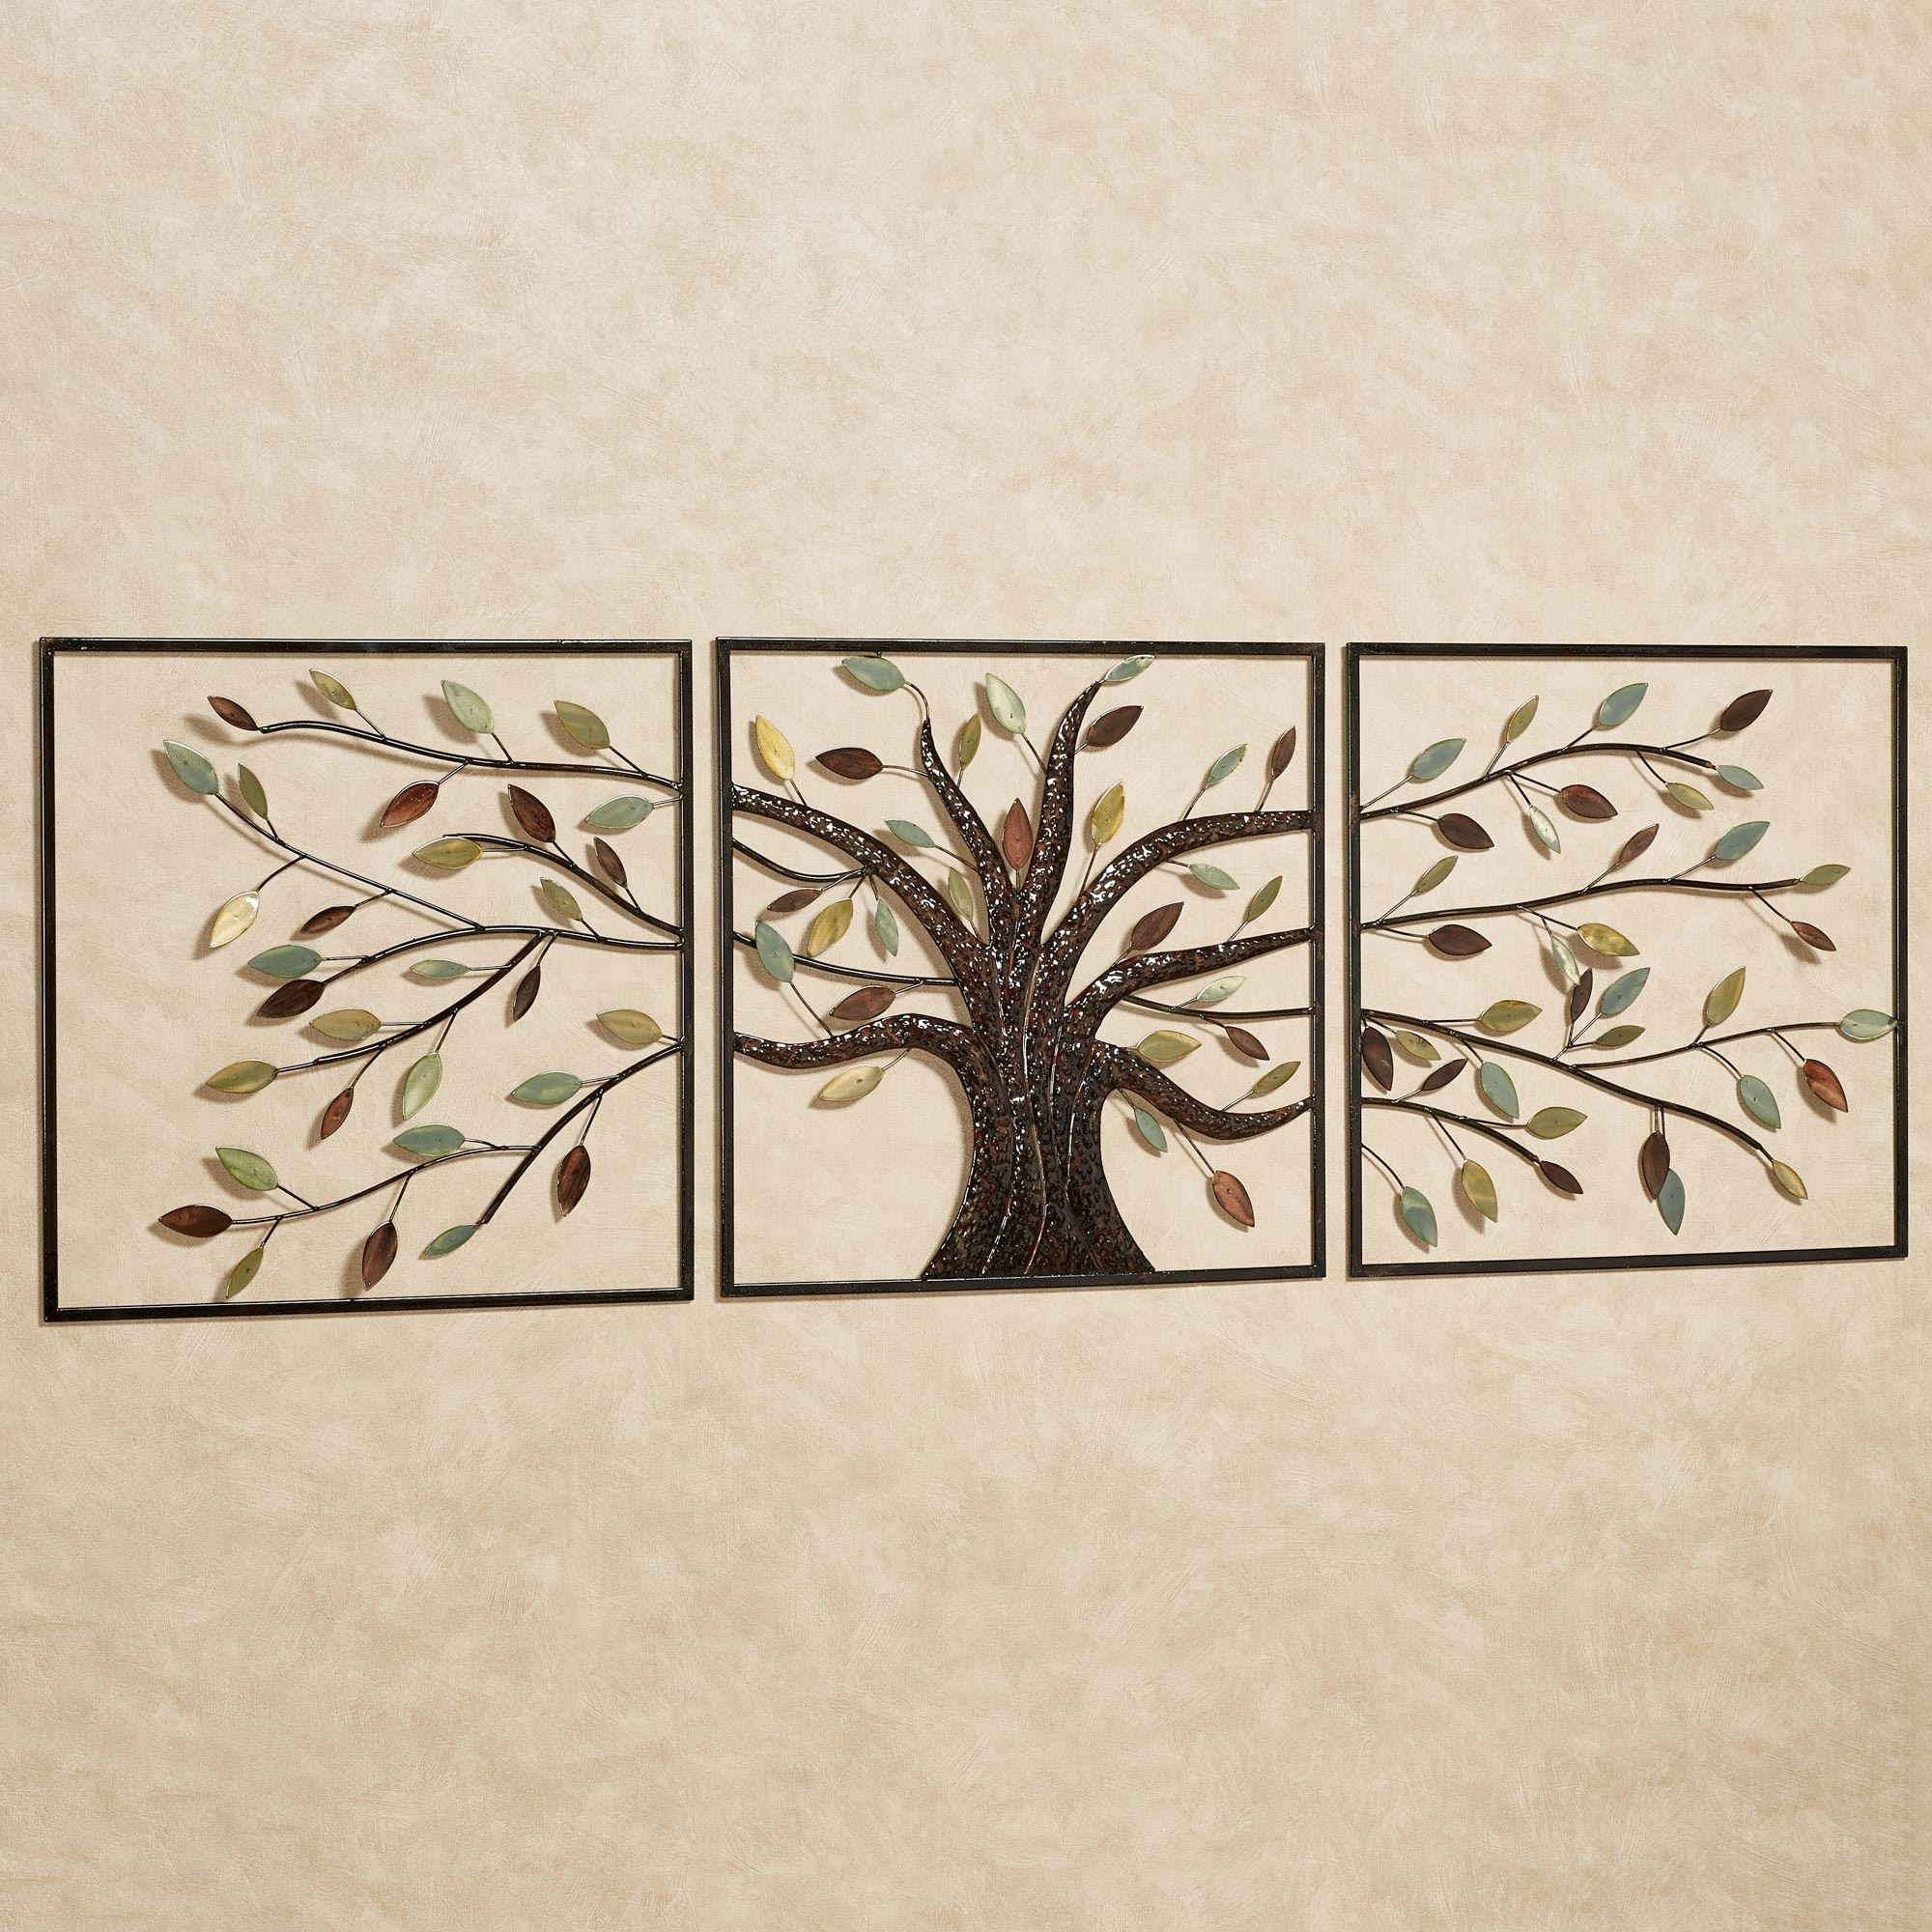 Most Recent Cheap Metal Wall Art Throughout Ever Changing Brown Tree Metal Wall Art Set (View 3 of 15)